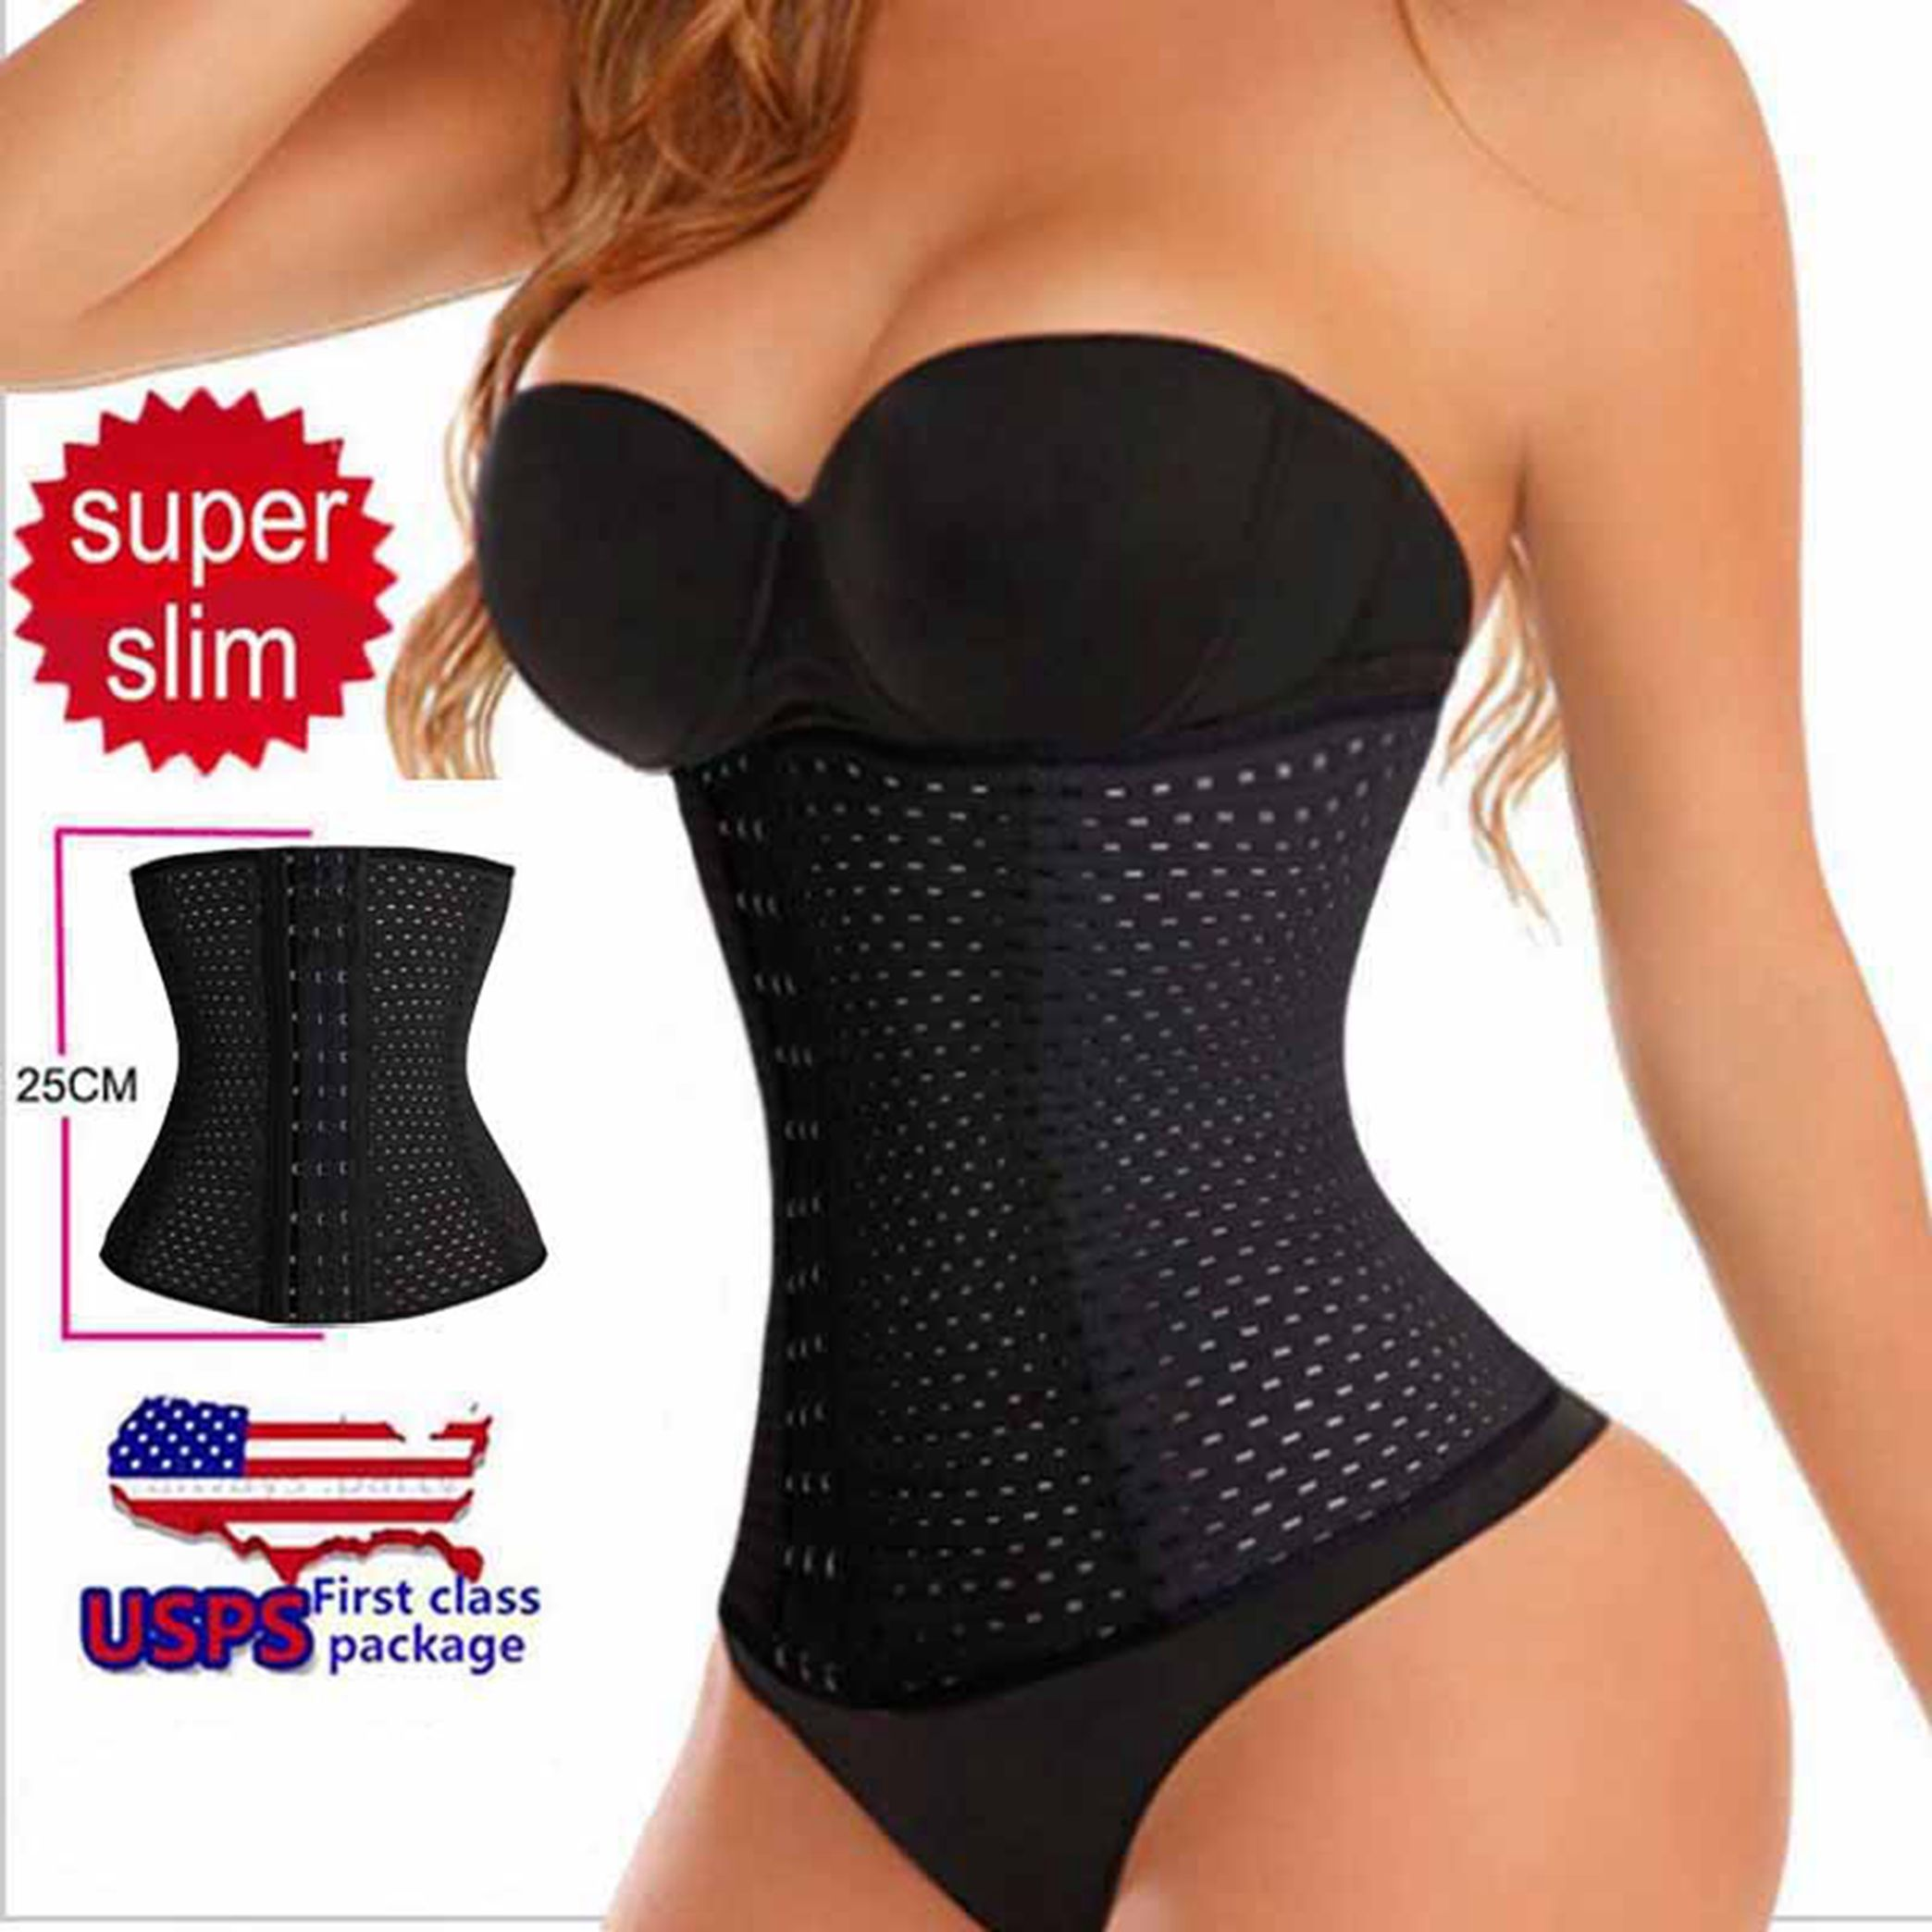 9eb19ca156e gym waist trainer Invisible Shaping Lower Abdomen Trimming Enhances  Hourglass Silhouette Eliminates love handles and muffin